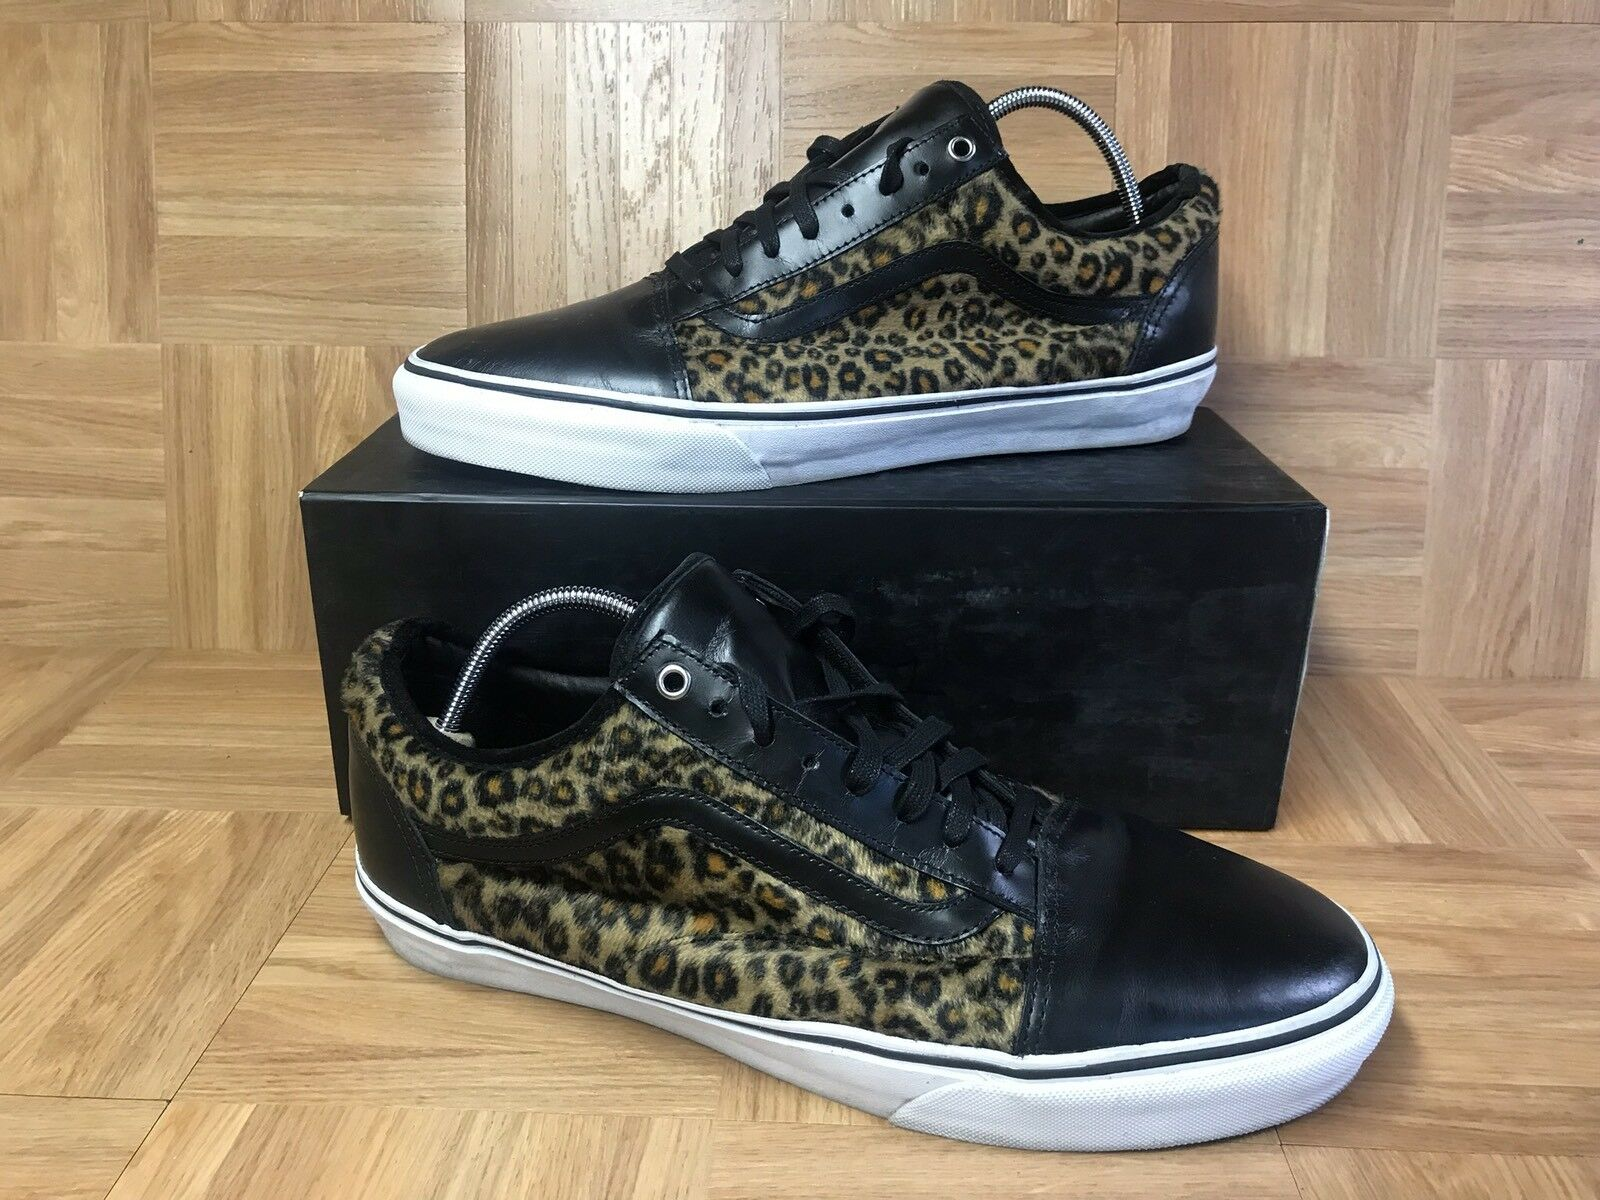 5062b9faa4c8c3 Rare vans old skool pro ave cheetah black leather supreme jpg 1600x1200 Jason  dill shoes